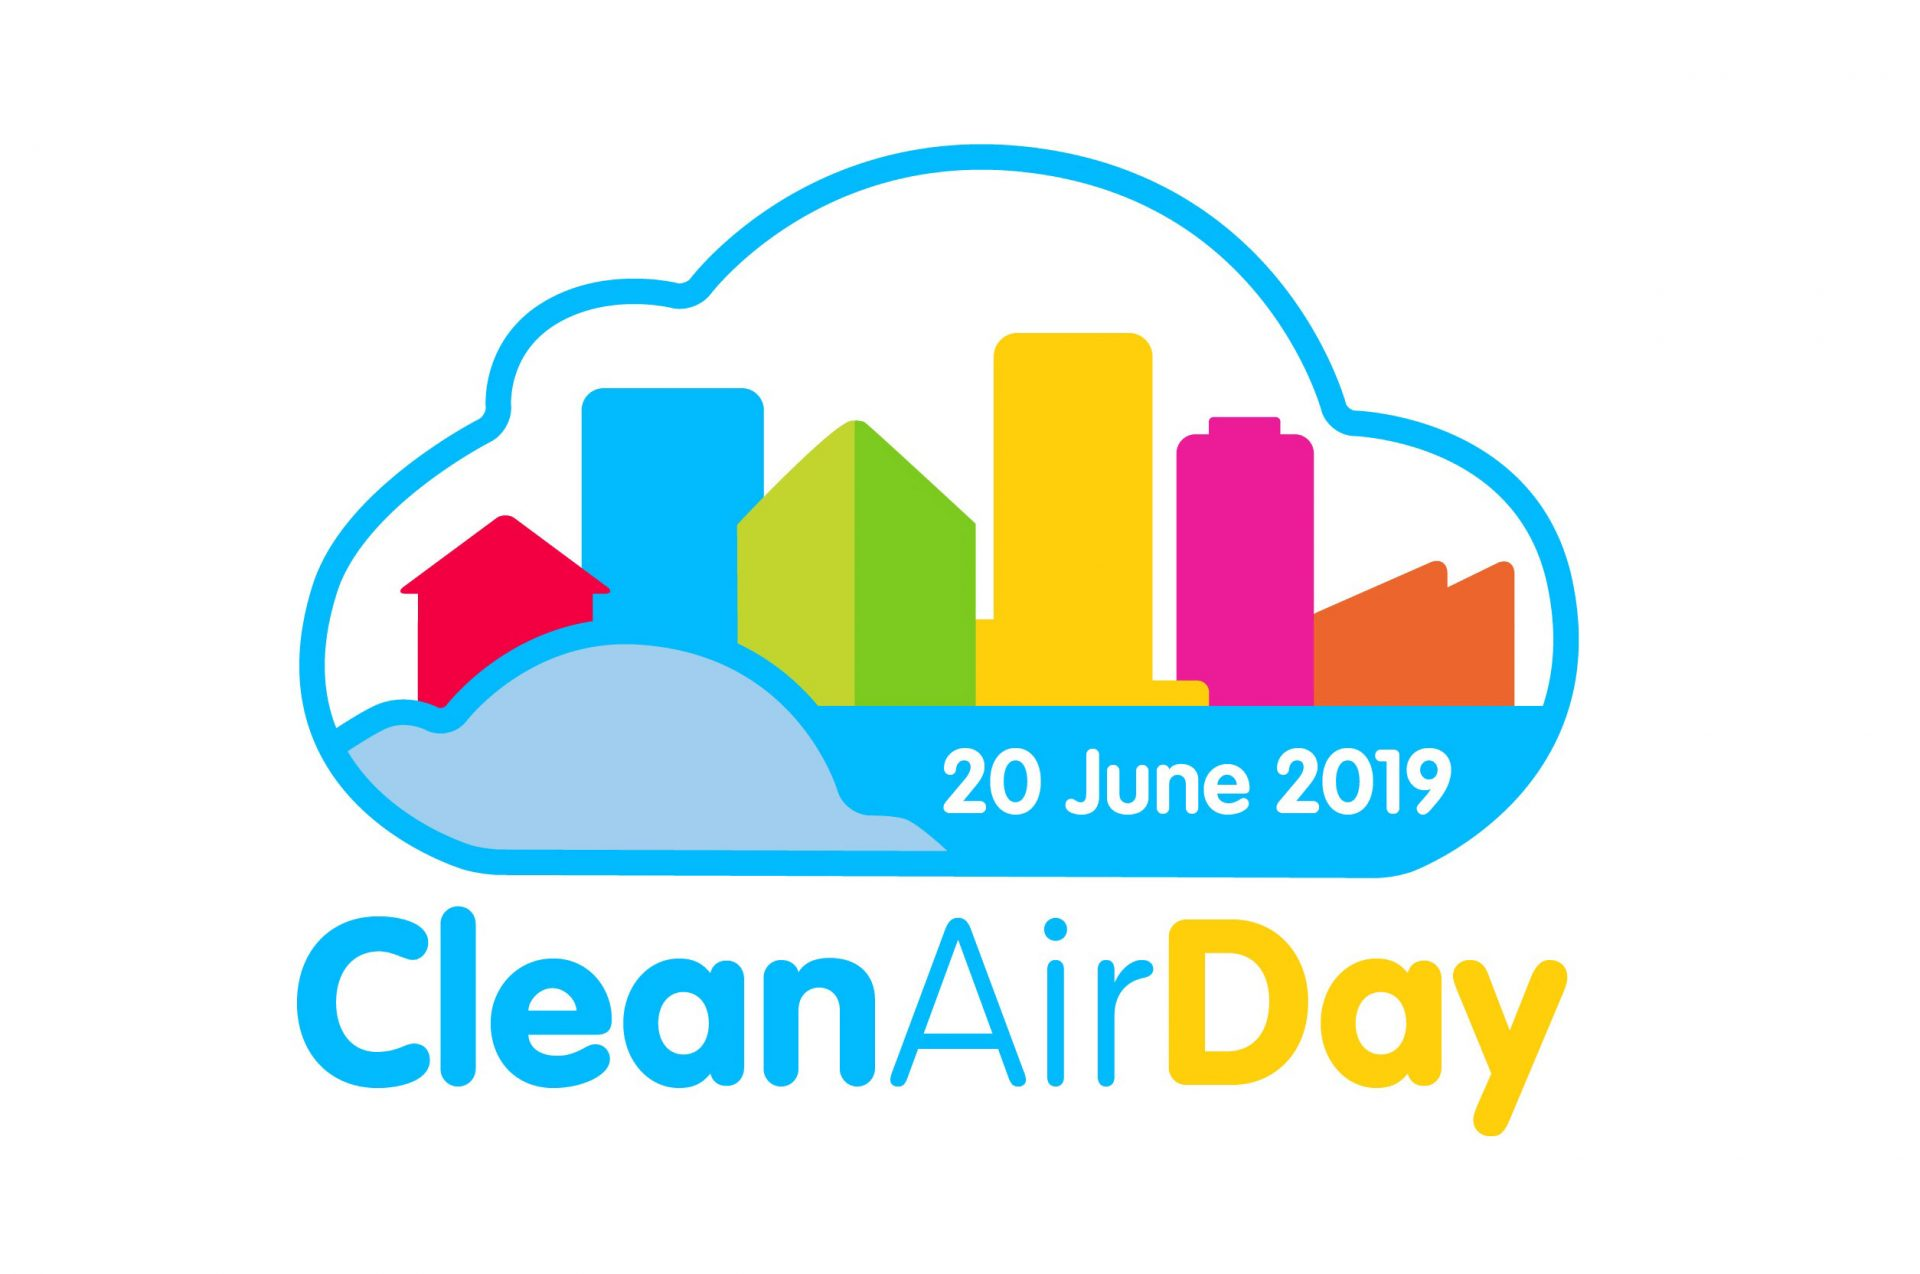 Clean Air Day 2019